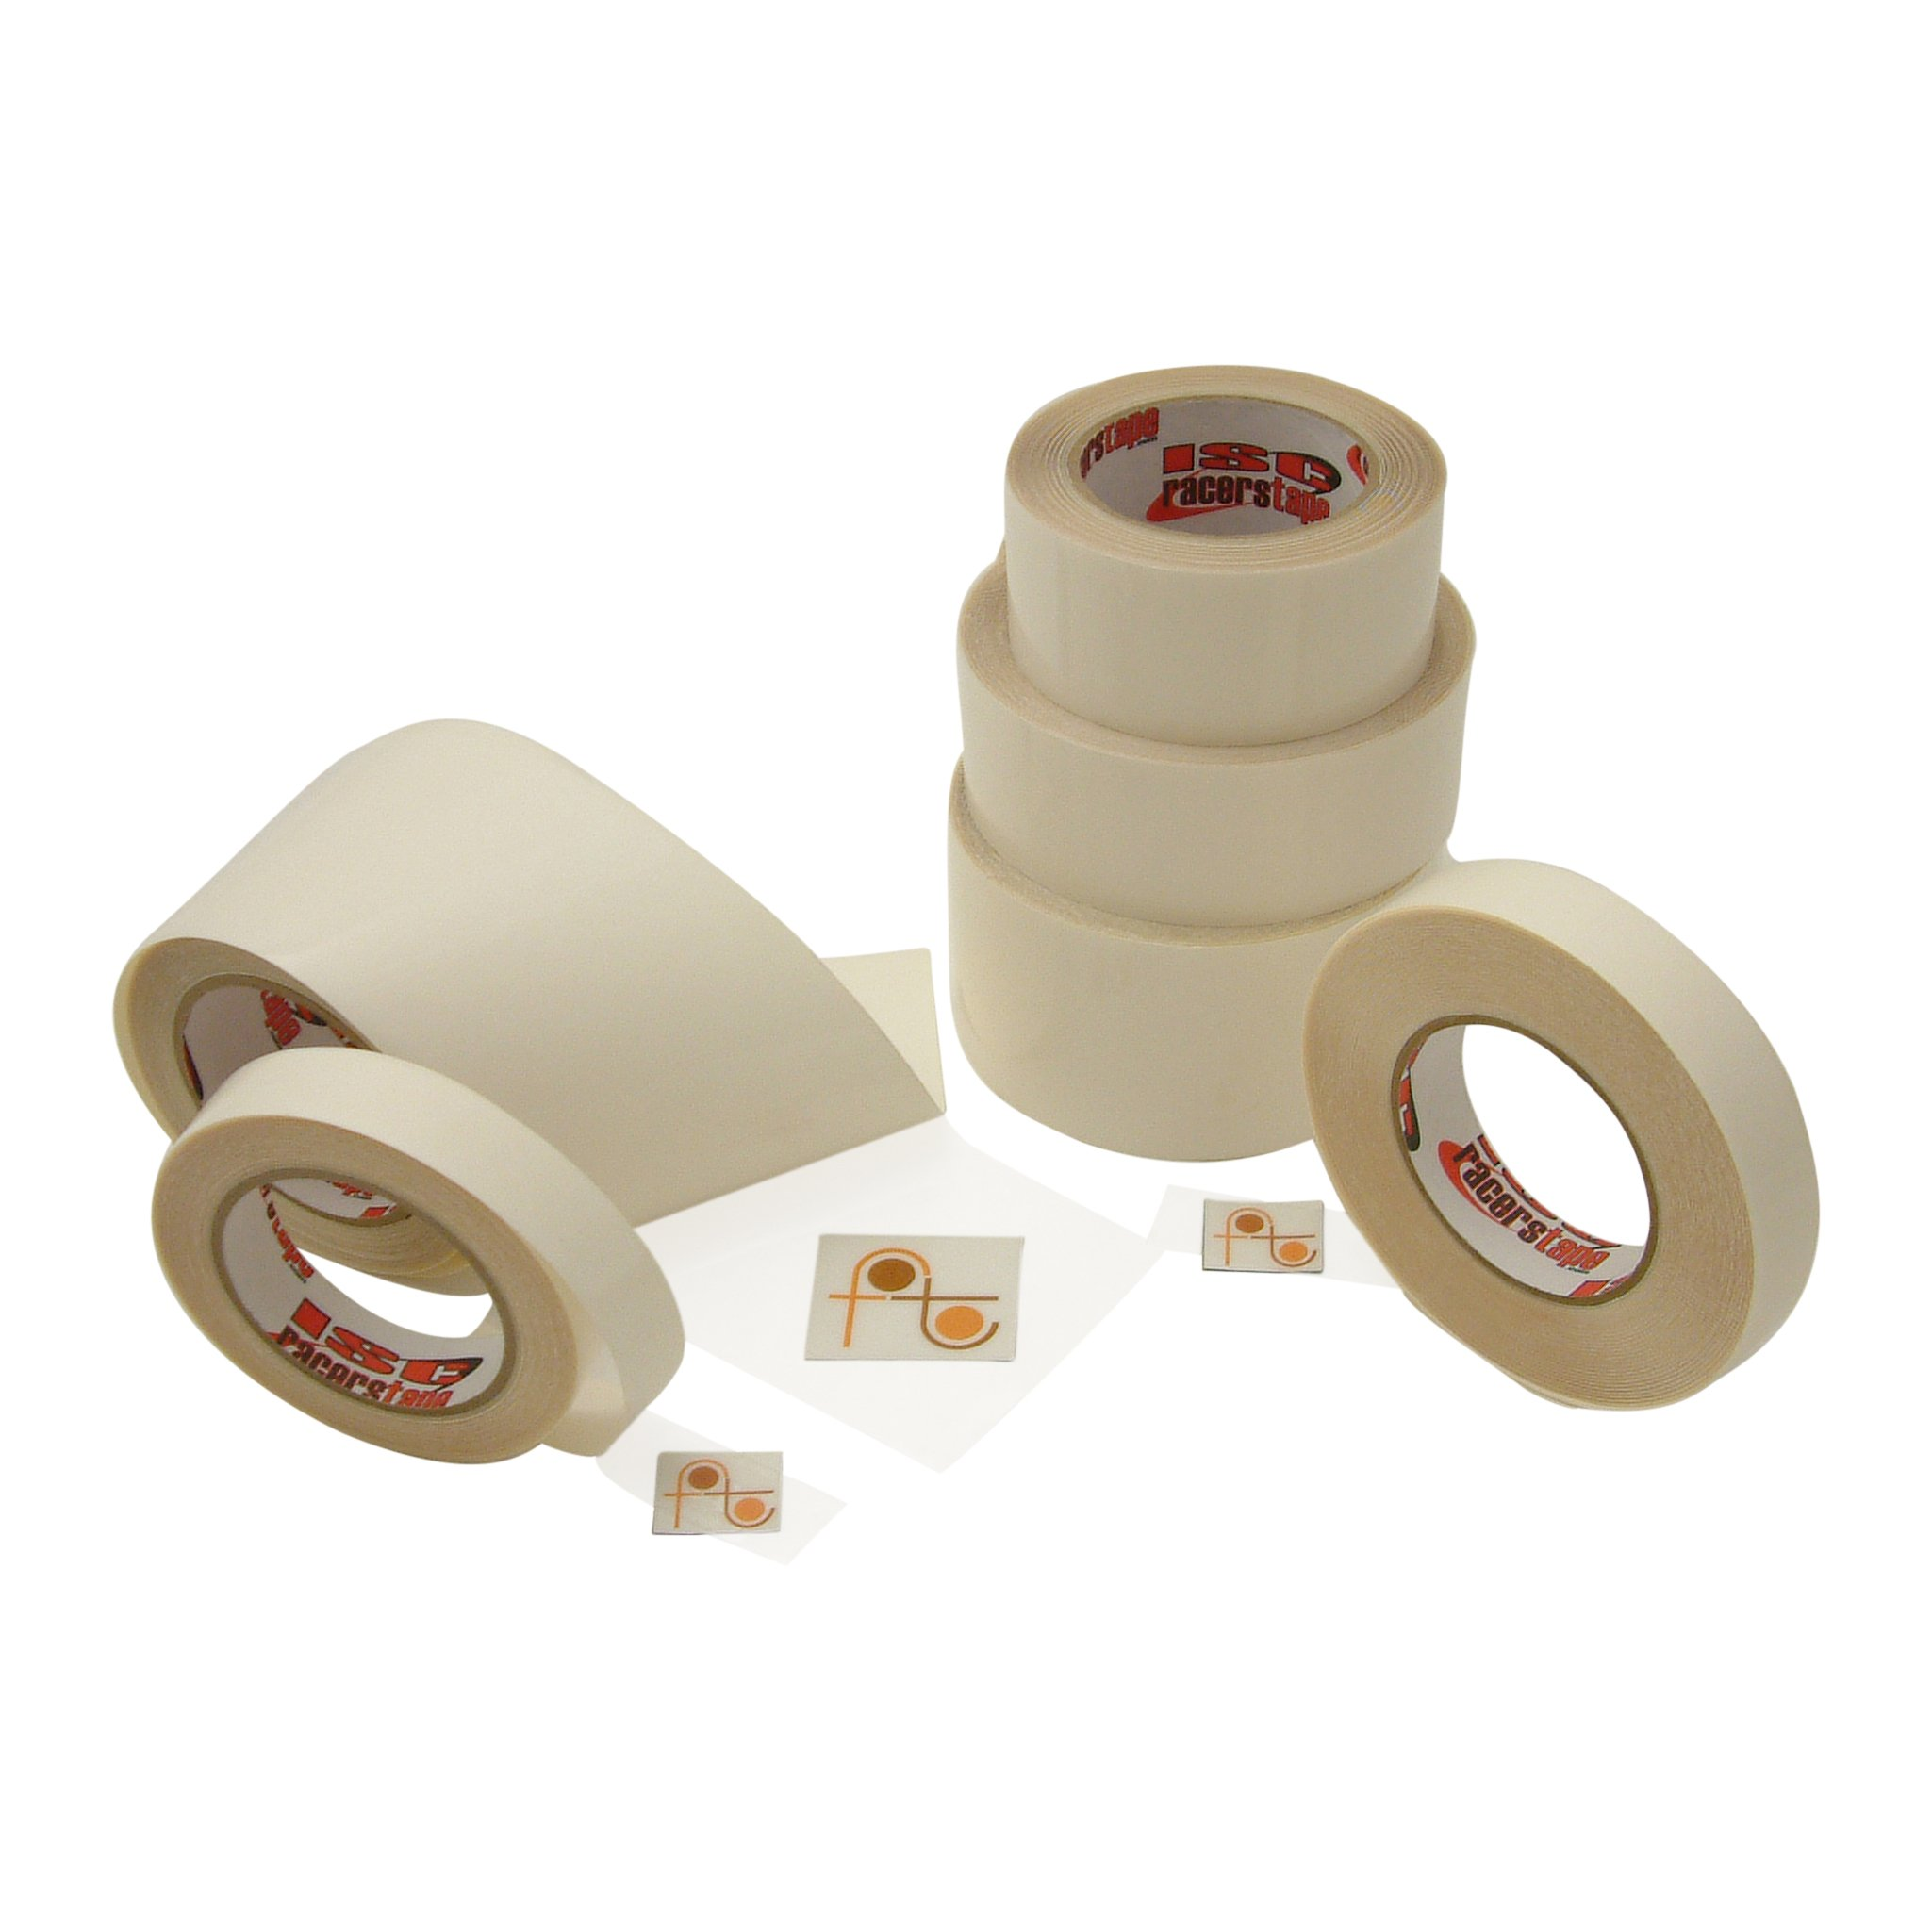 ISC Helicopter-OG-HD Surface Guard Tape: 8 in. x 30 ft. (Transparent) by ISC Racers Tape